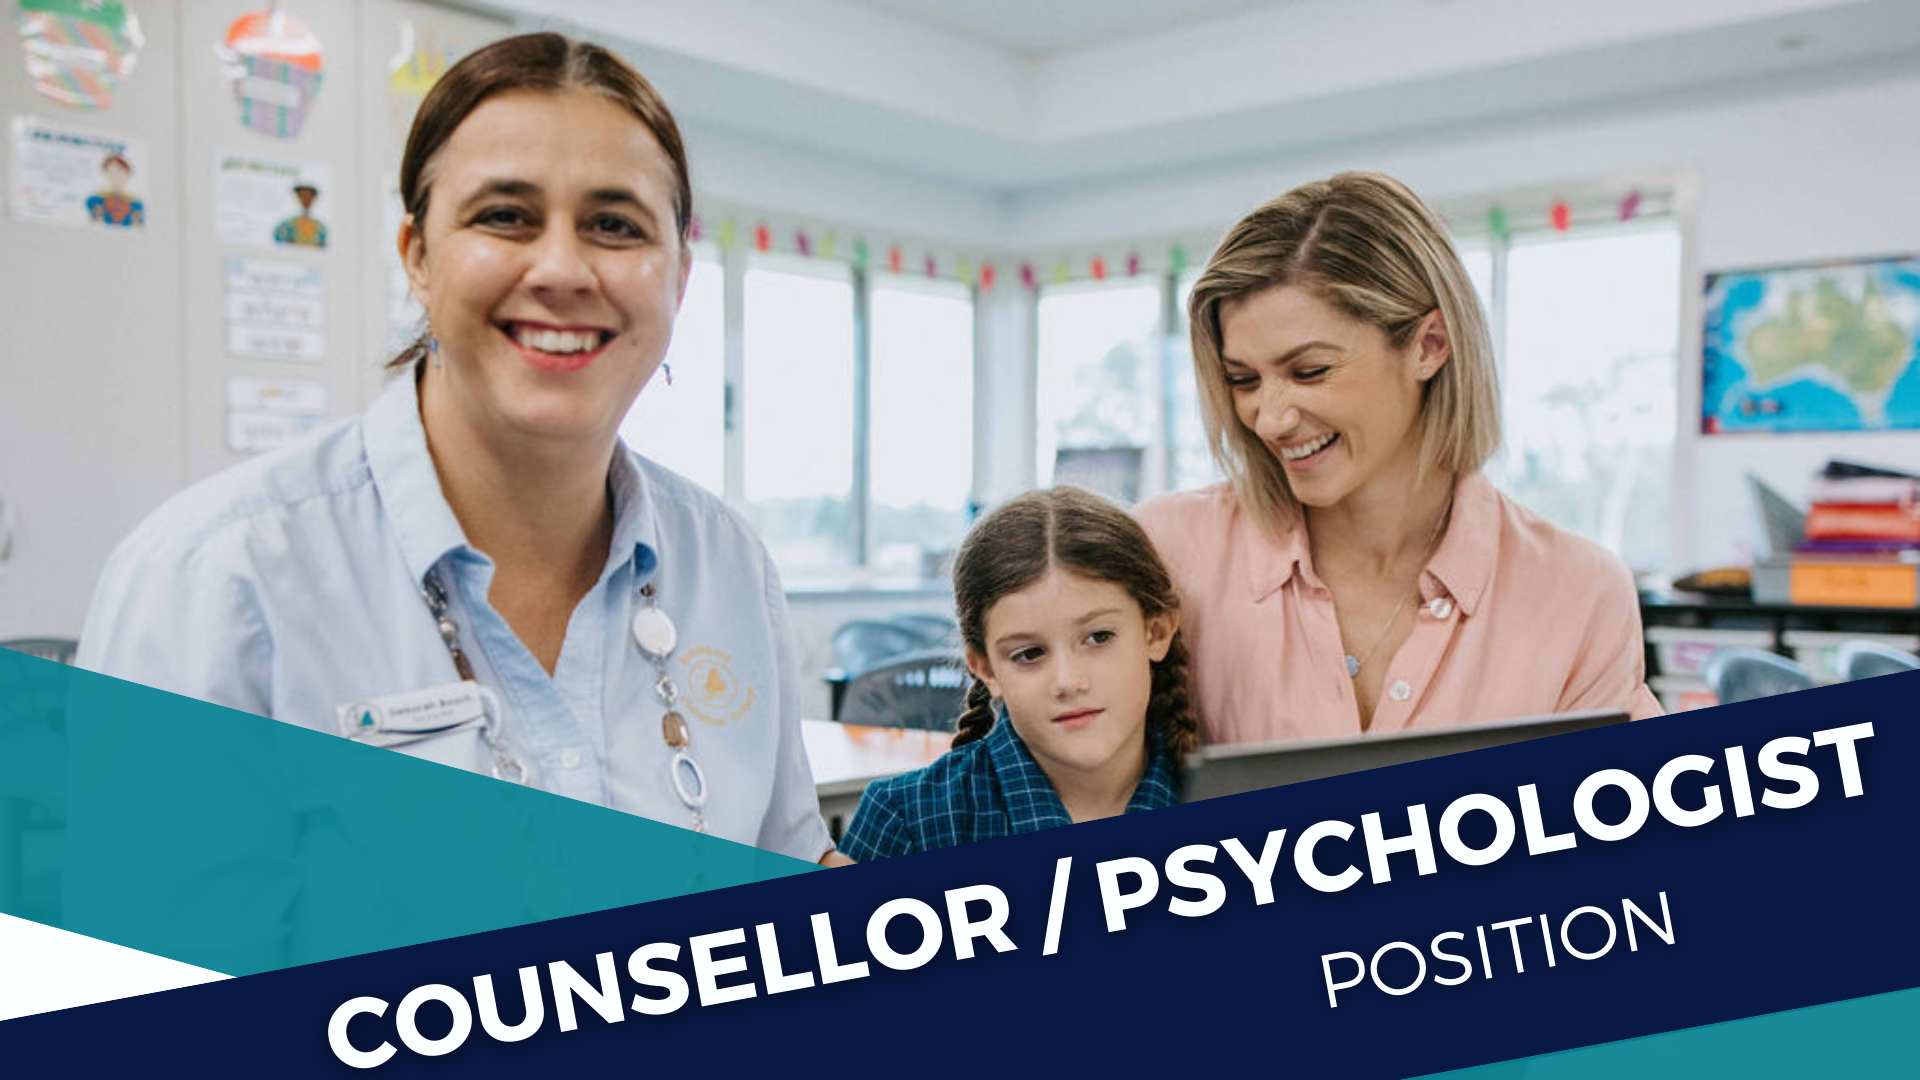 Counsellor Psychologist